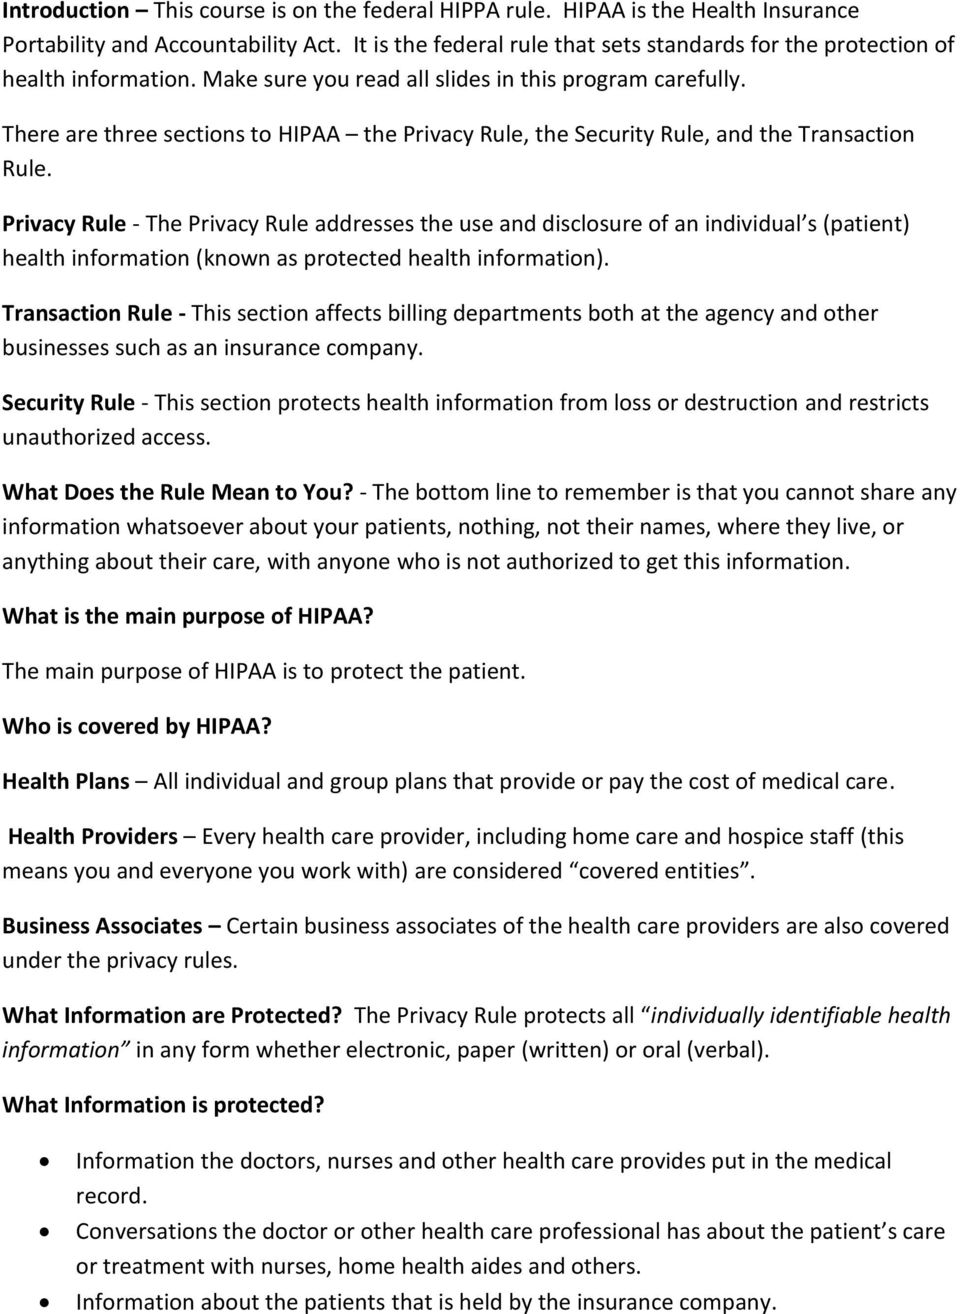 There are three sections to HIPAA the Privacy Rule, the Security Rule, and the Transaction Rule.